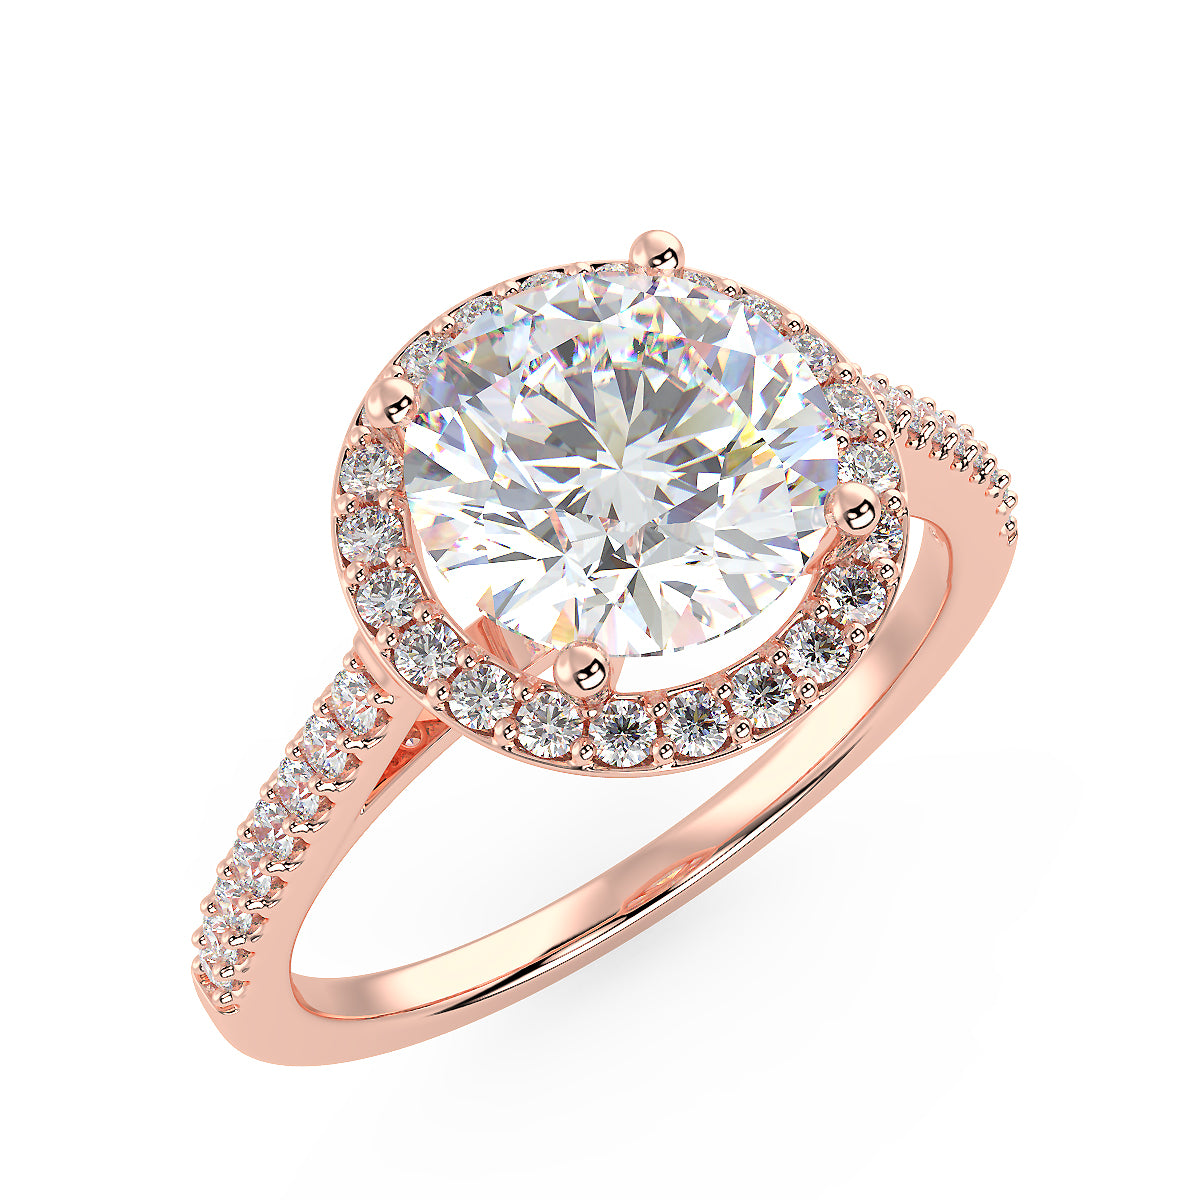 Carina Engagement Ring in Rose Gold